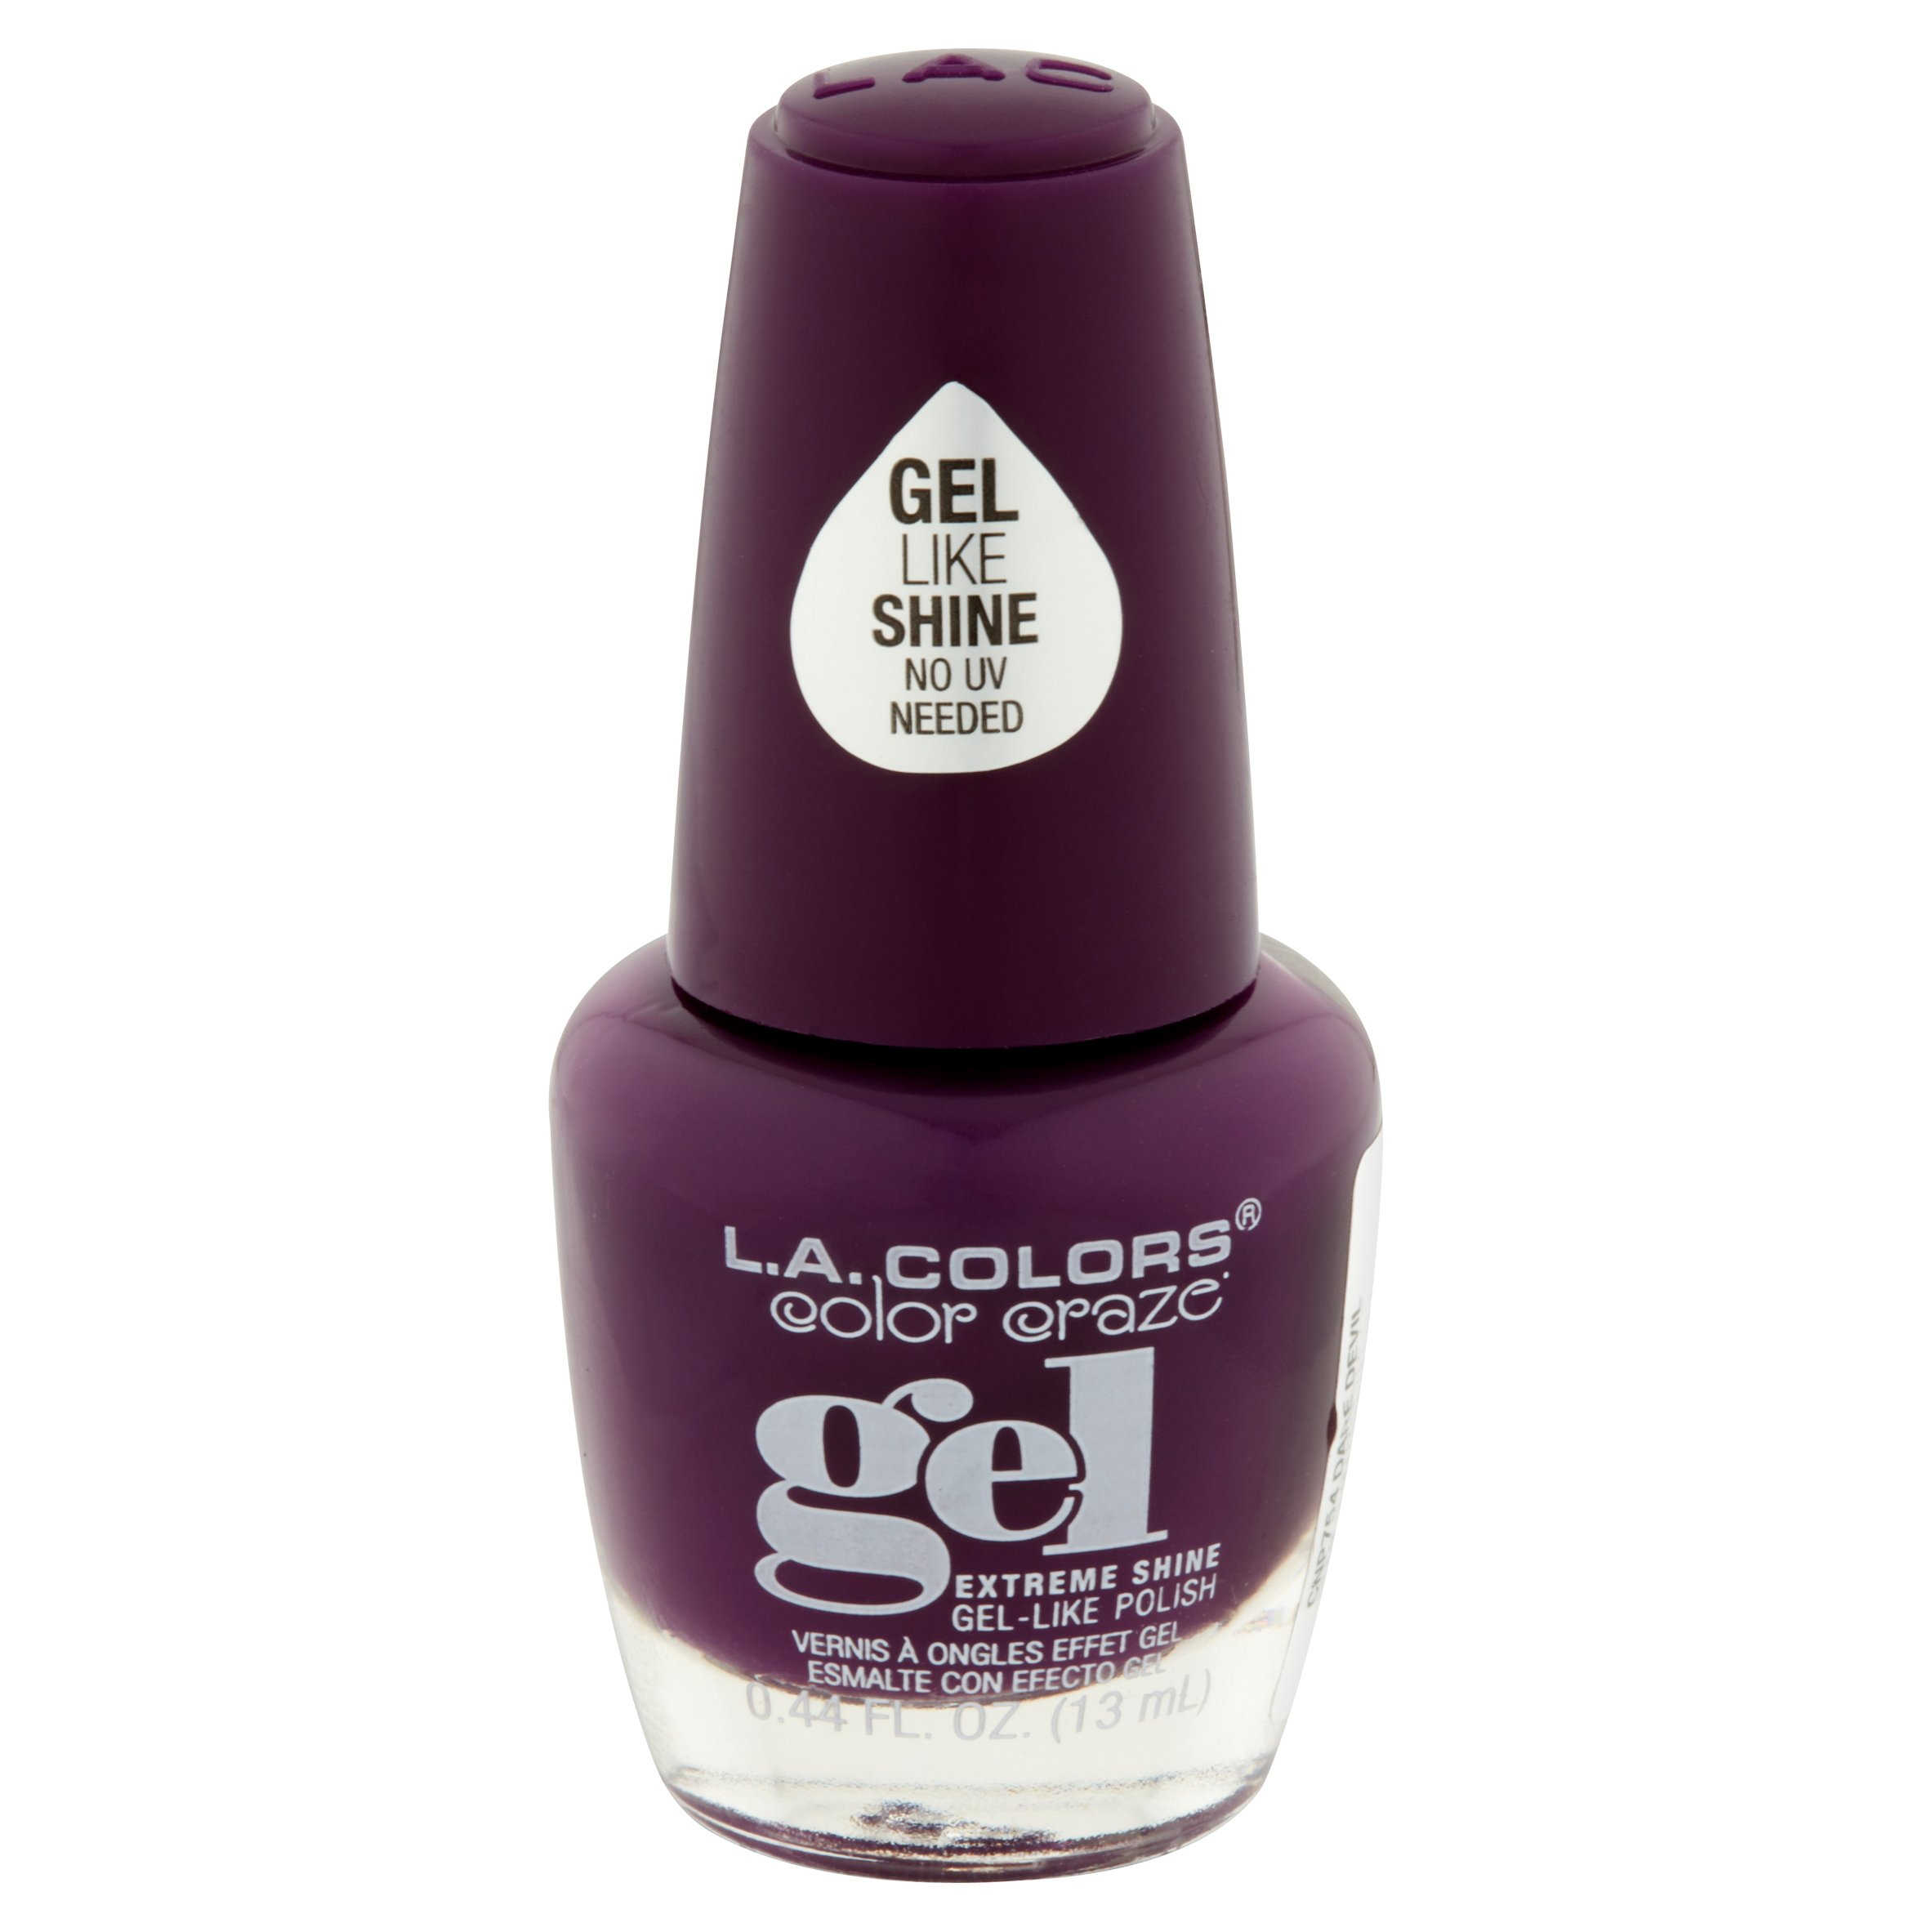 LA Colors Gel Shine Nail Polish, Risque, 0.44 Oz - Walmart.com